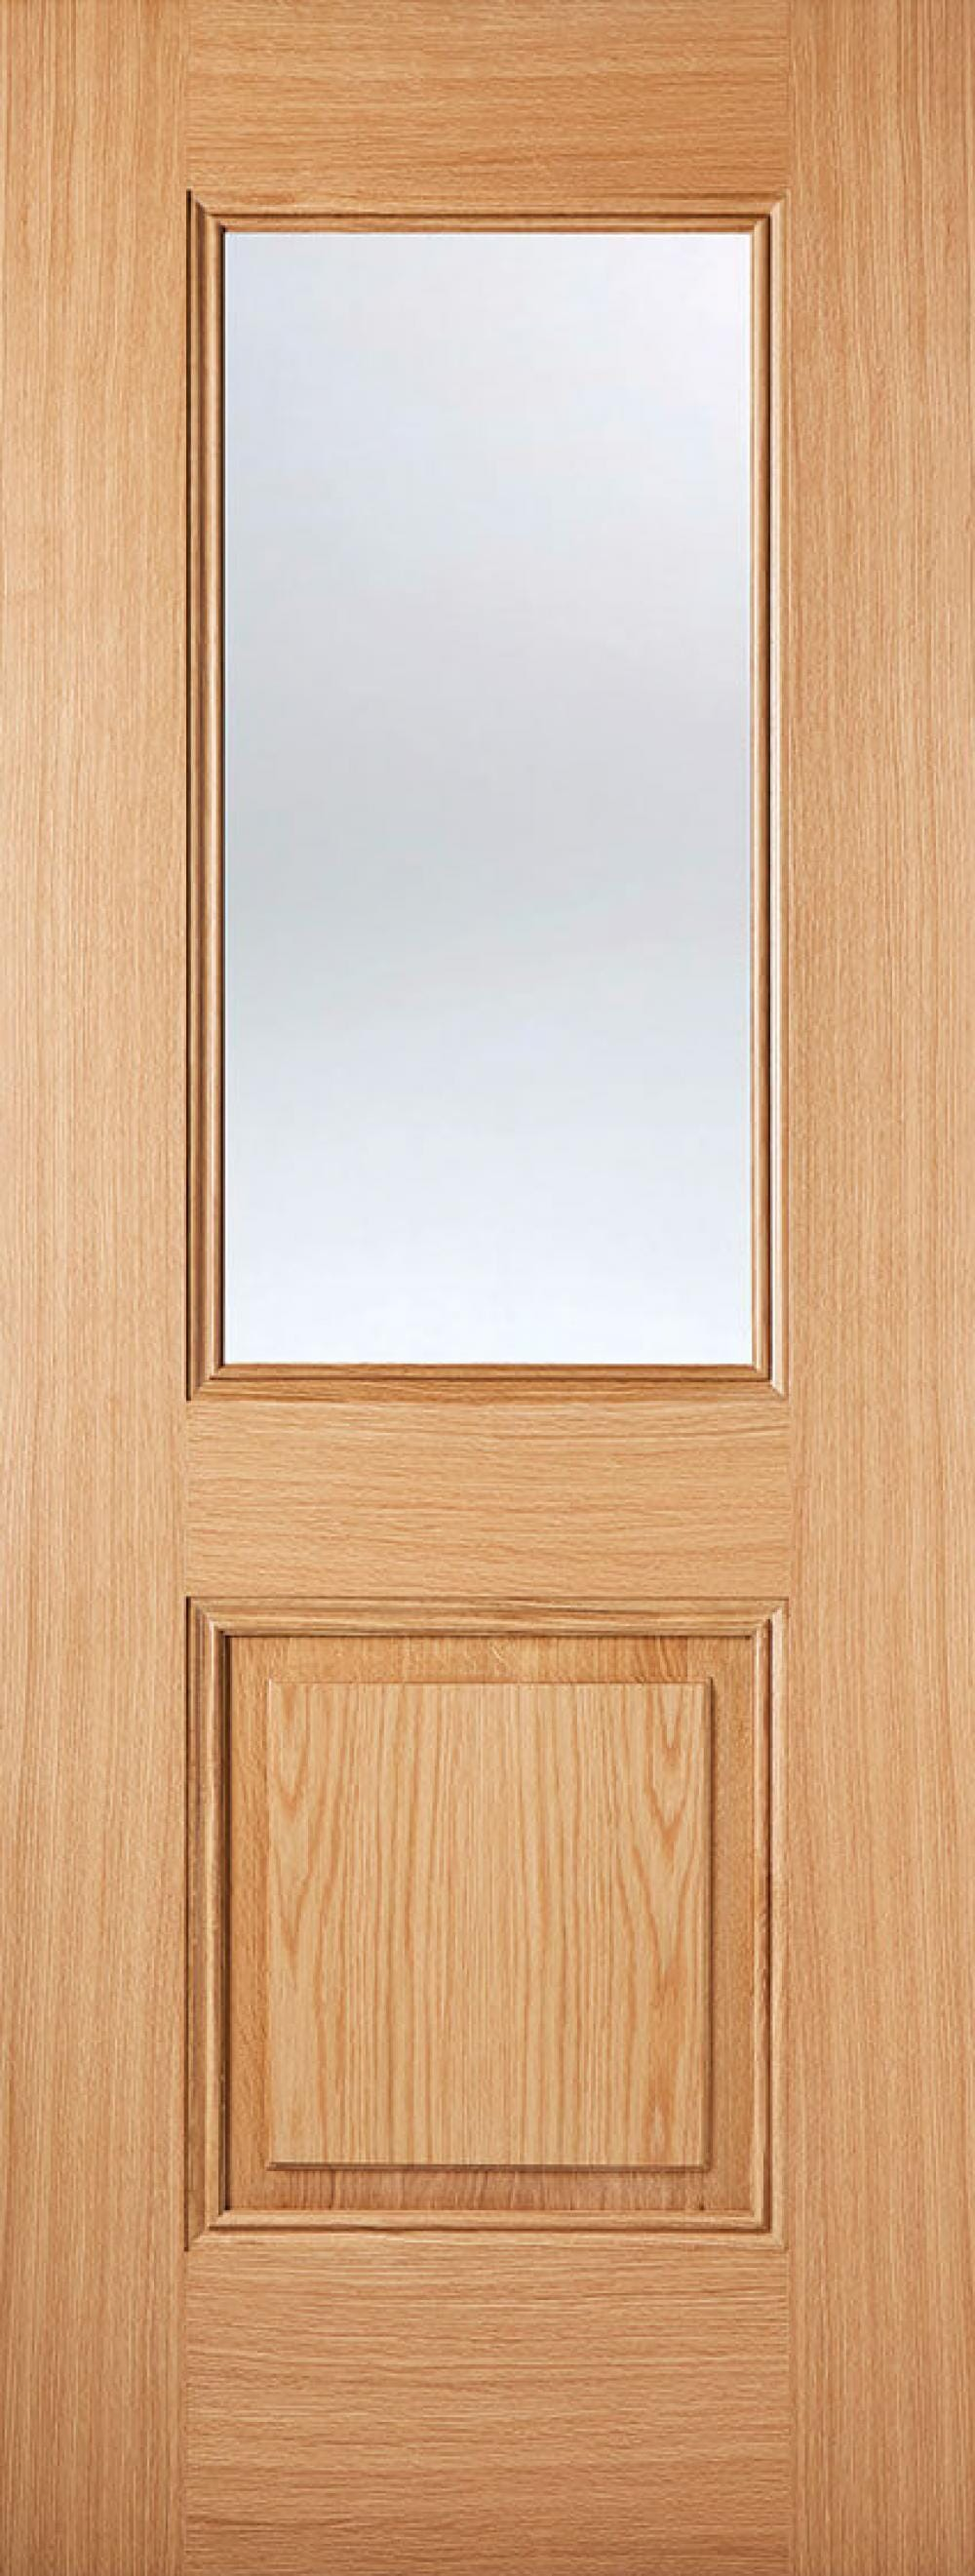 Arnhem Oak 1l/1p - Clear Glass Prefinished Image